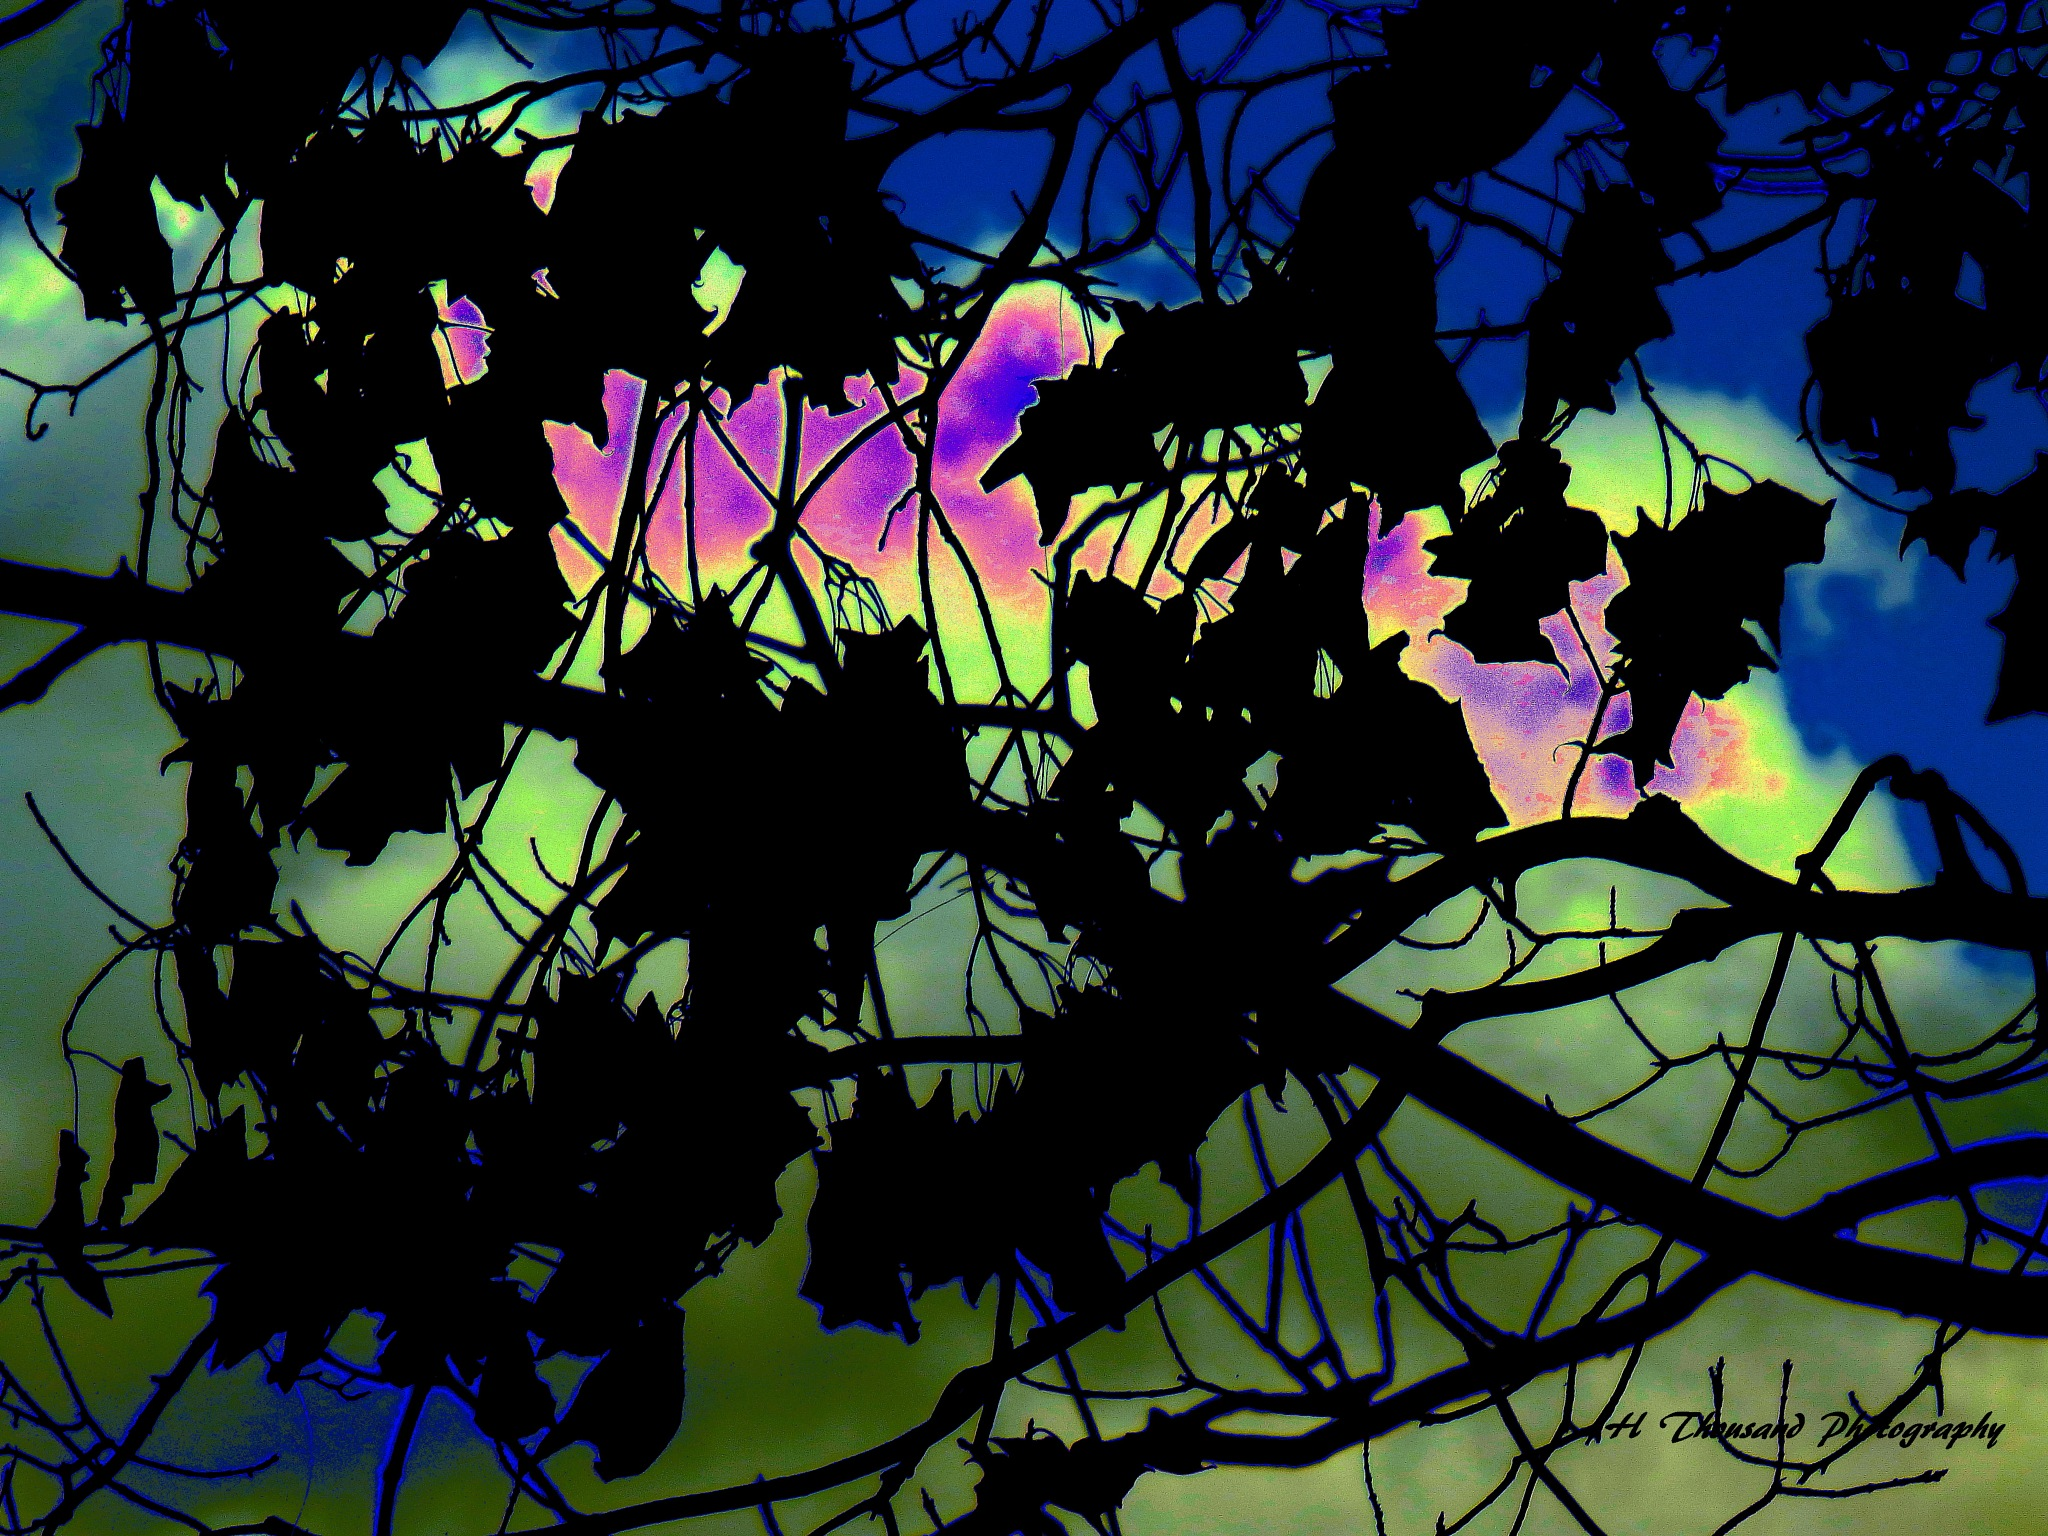 Tree and Leaves (abstract) by hrthousandjr